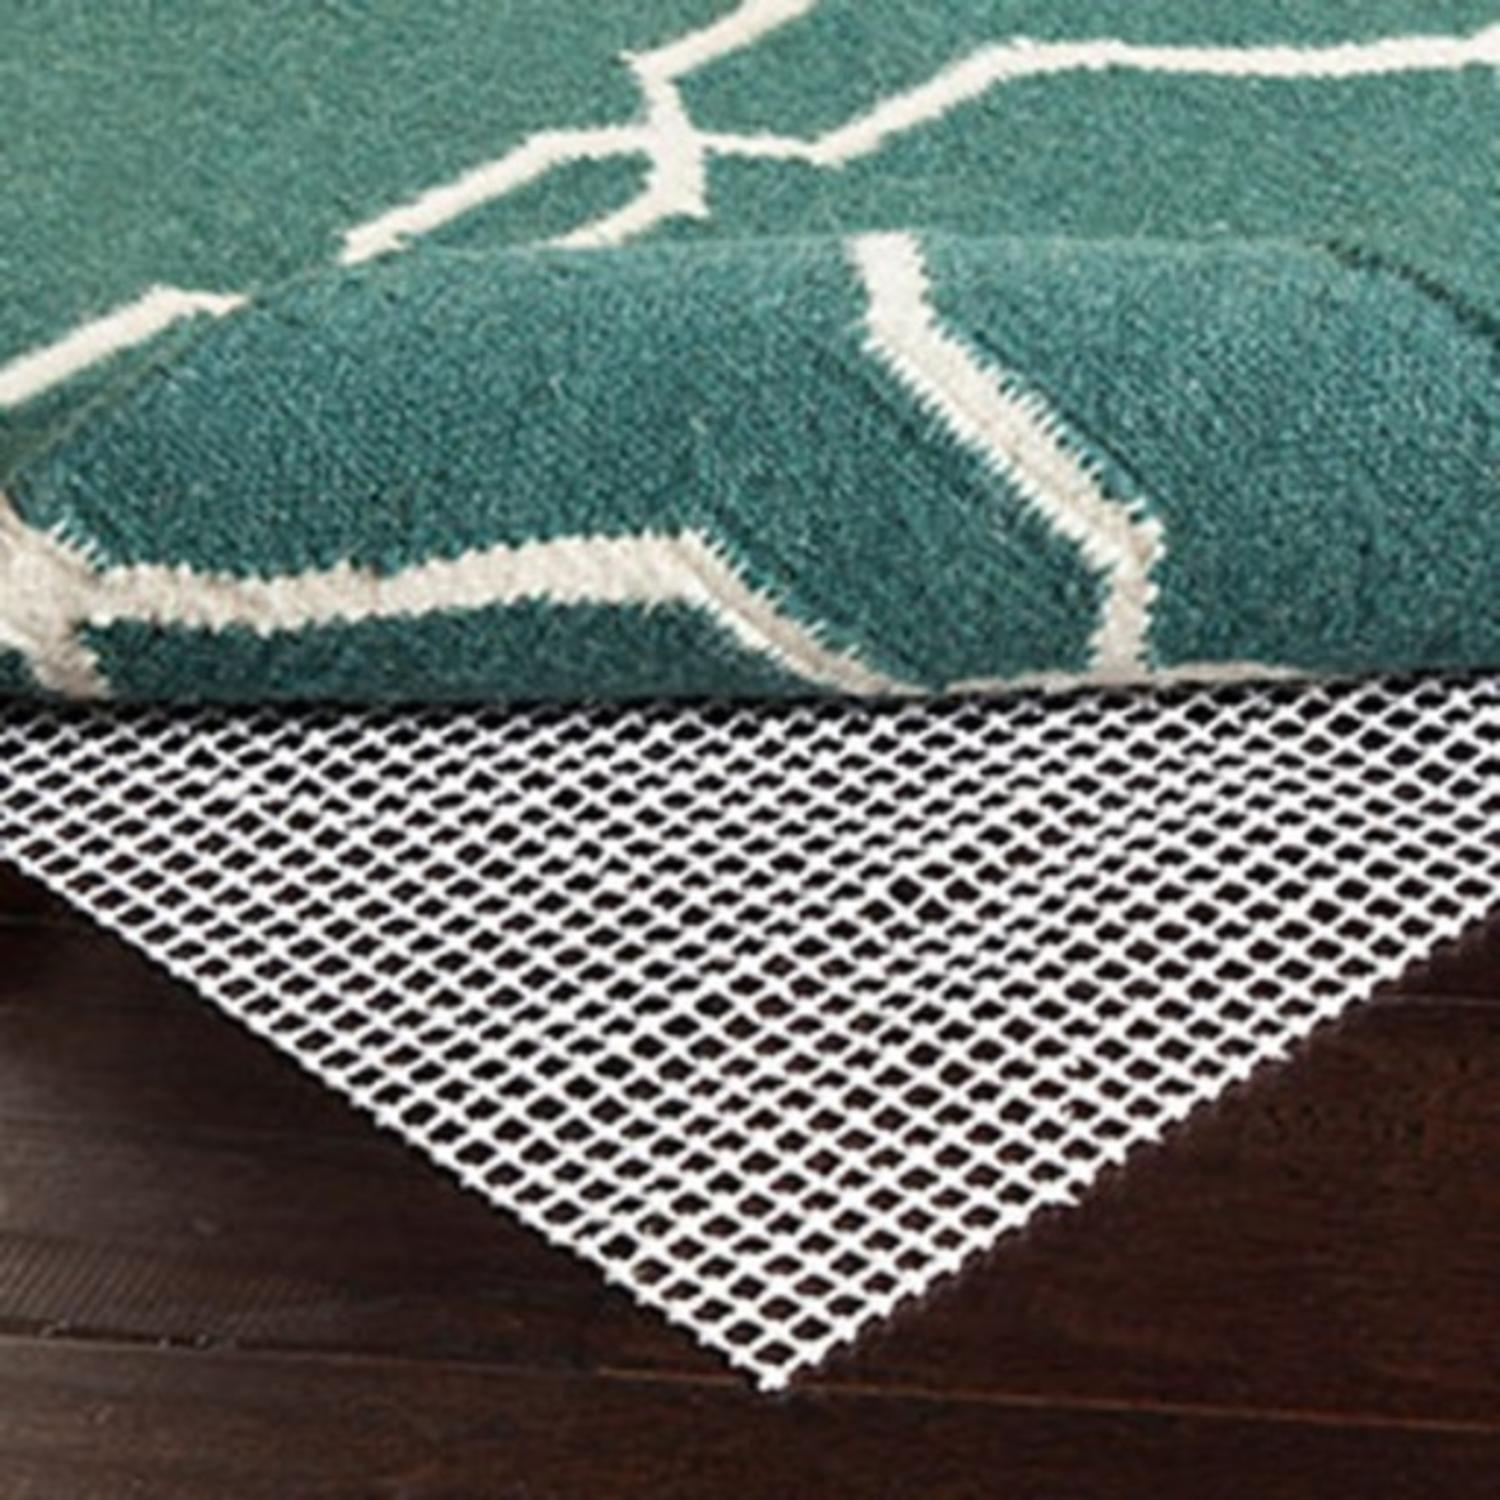 Standard Slip Resistant Liner for a 6' x 9' Area Throw Rug